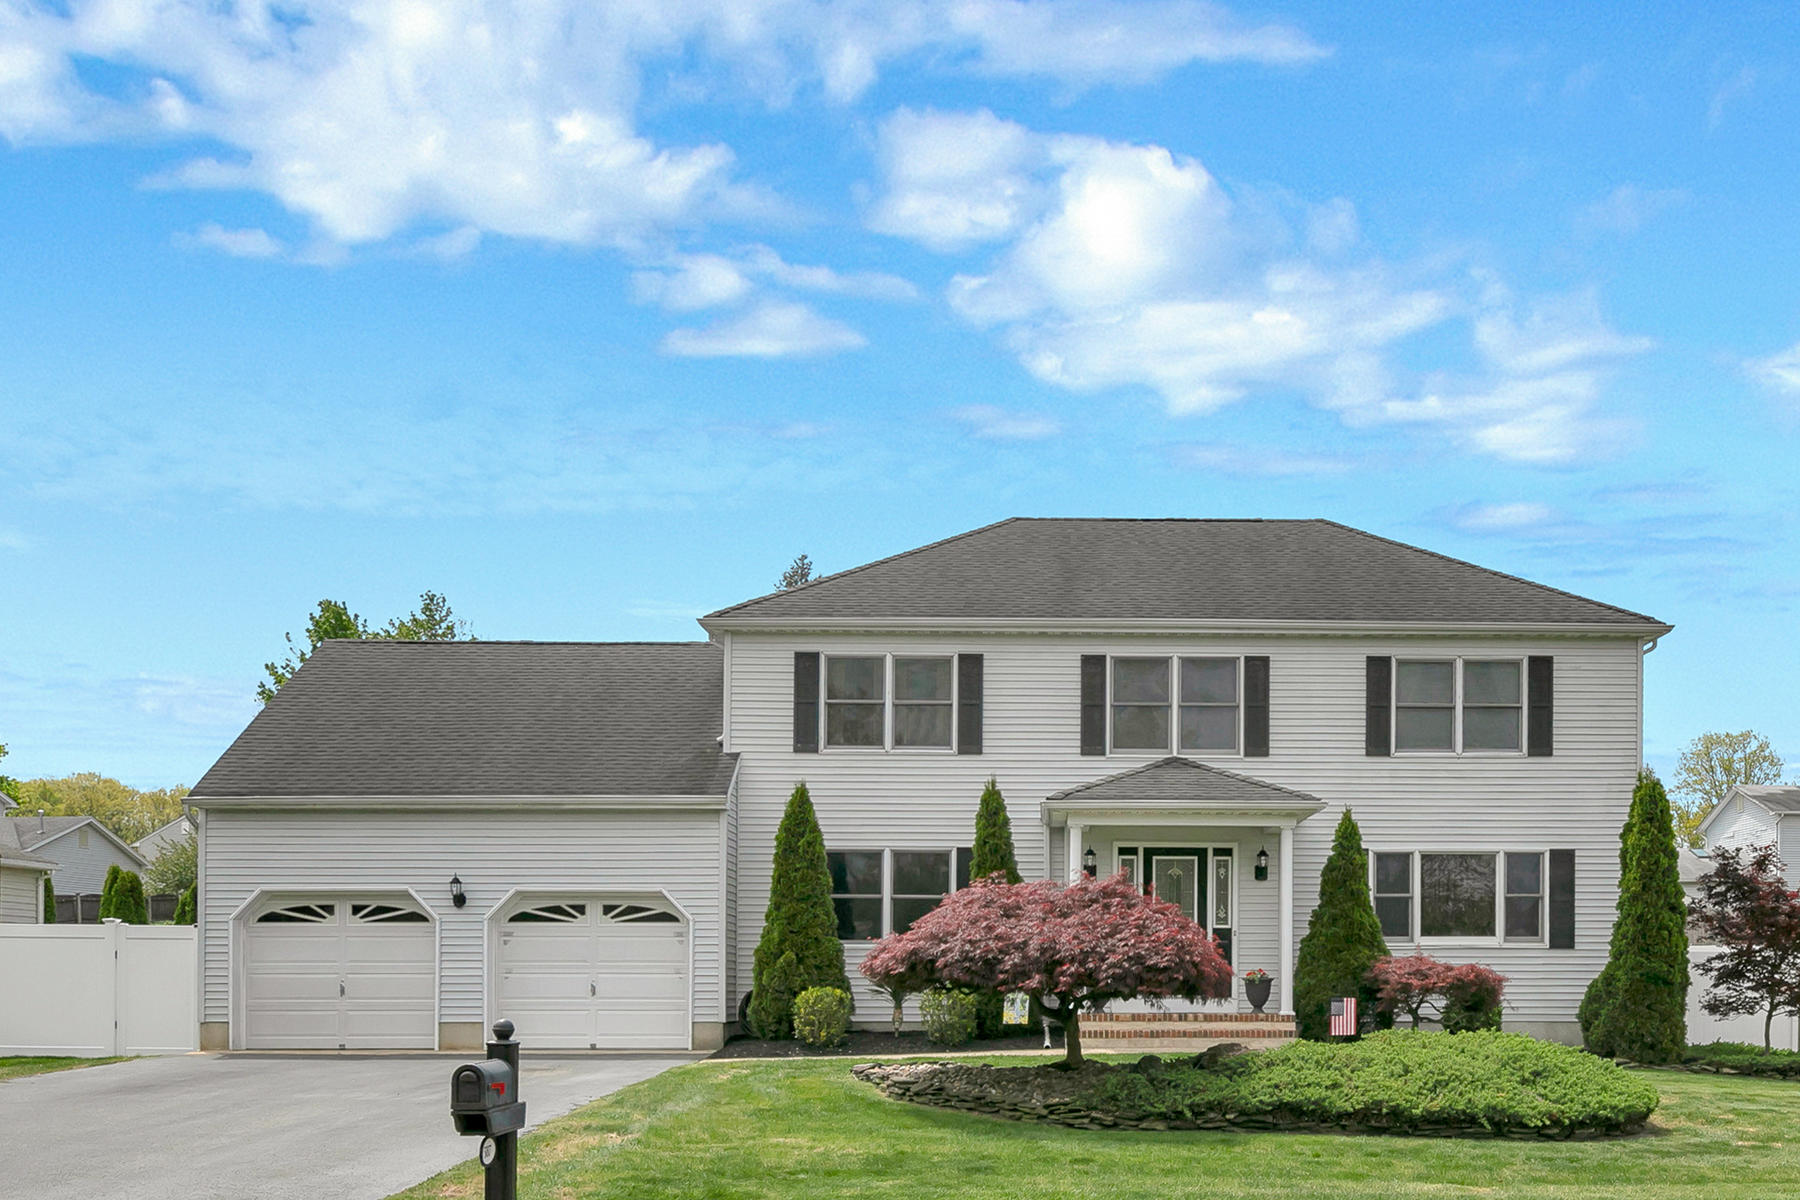 Single Family Homes for Sale at Beautifully Appointed Colonial Style Home In Desirable Twin Oaks Neighborhood 507 Sleepy Hollow Road Toms River, New Jersey 08753 United States